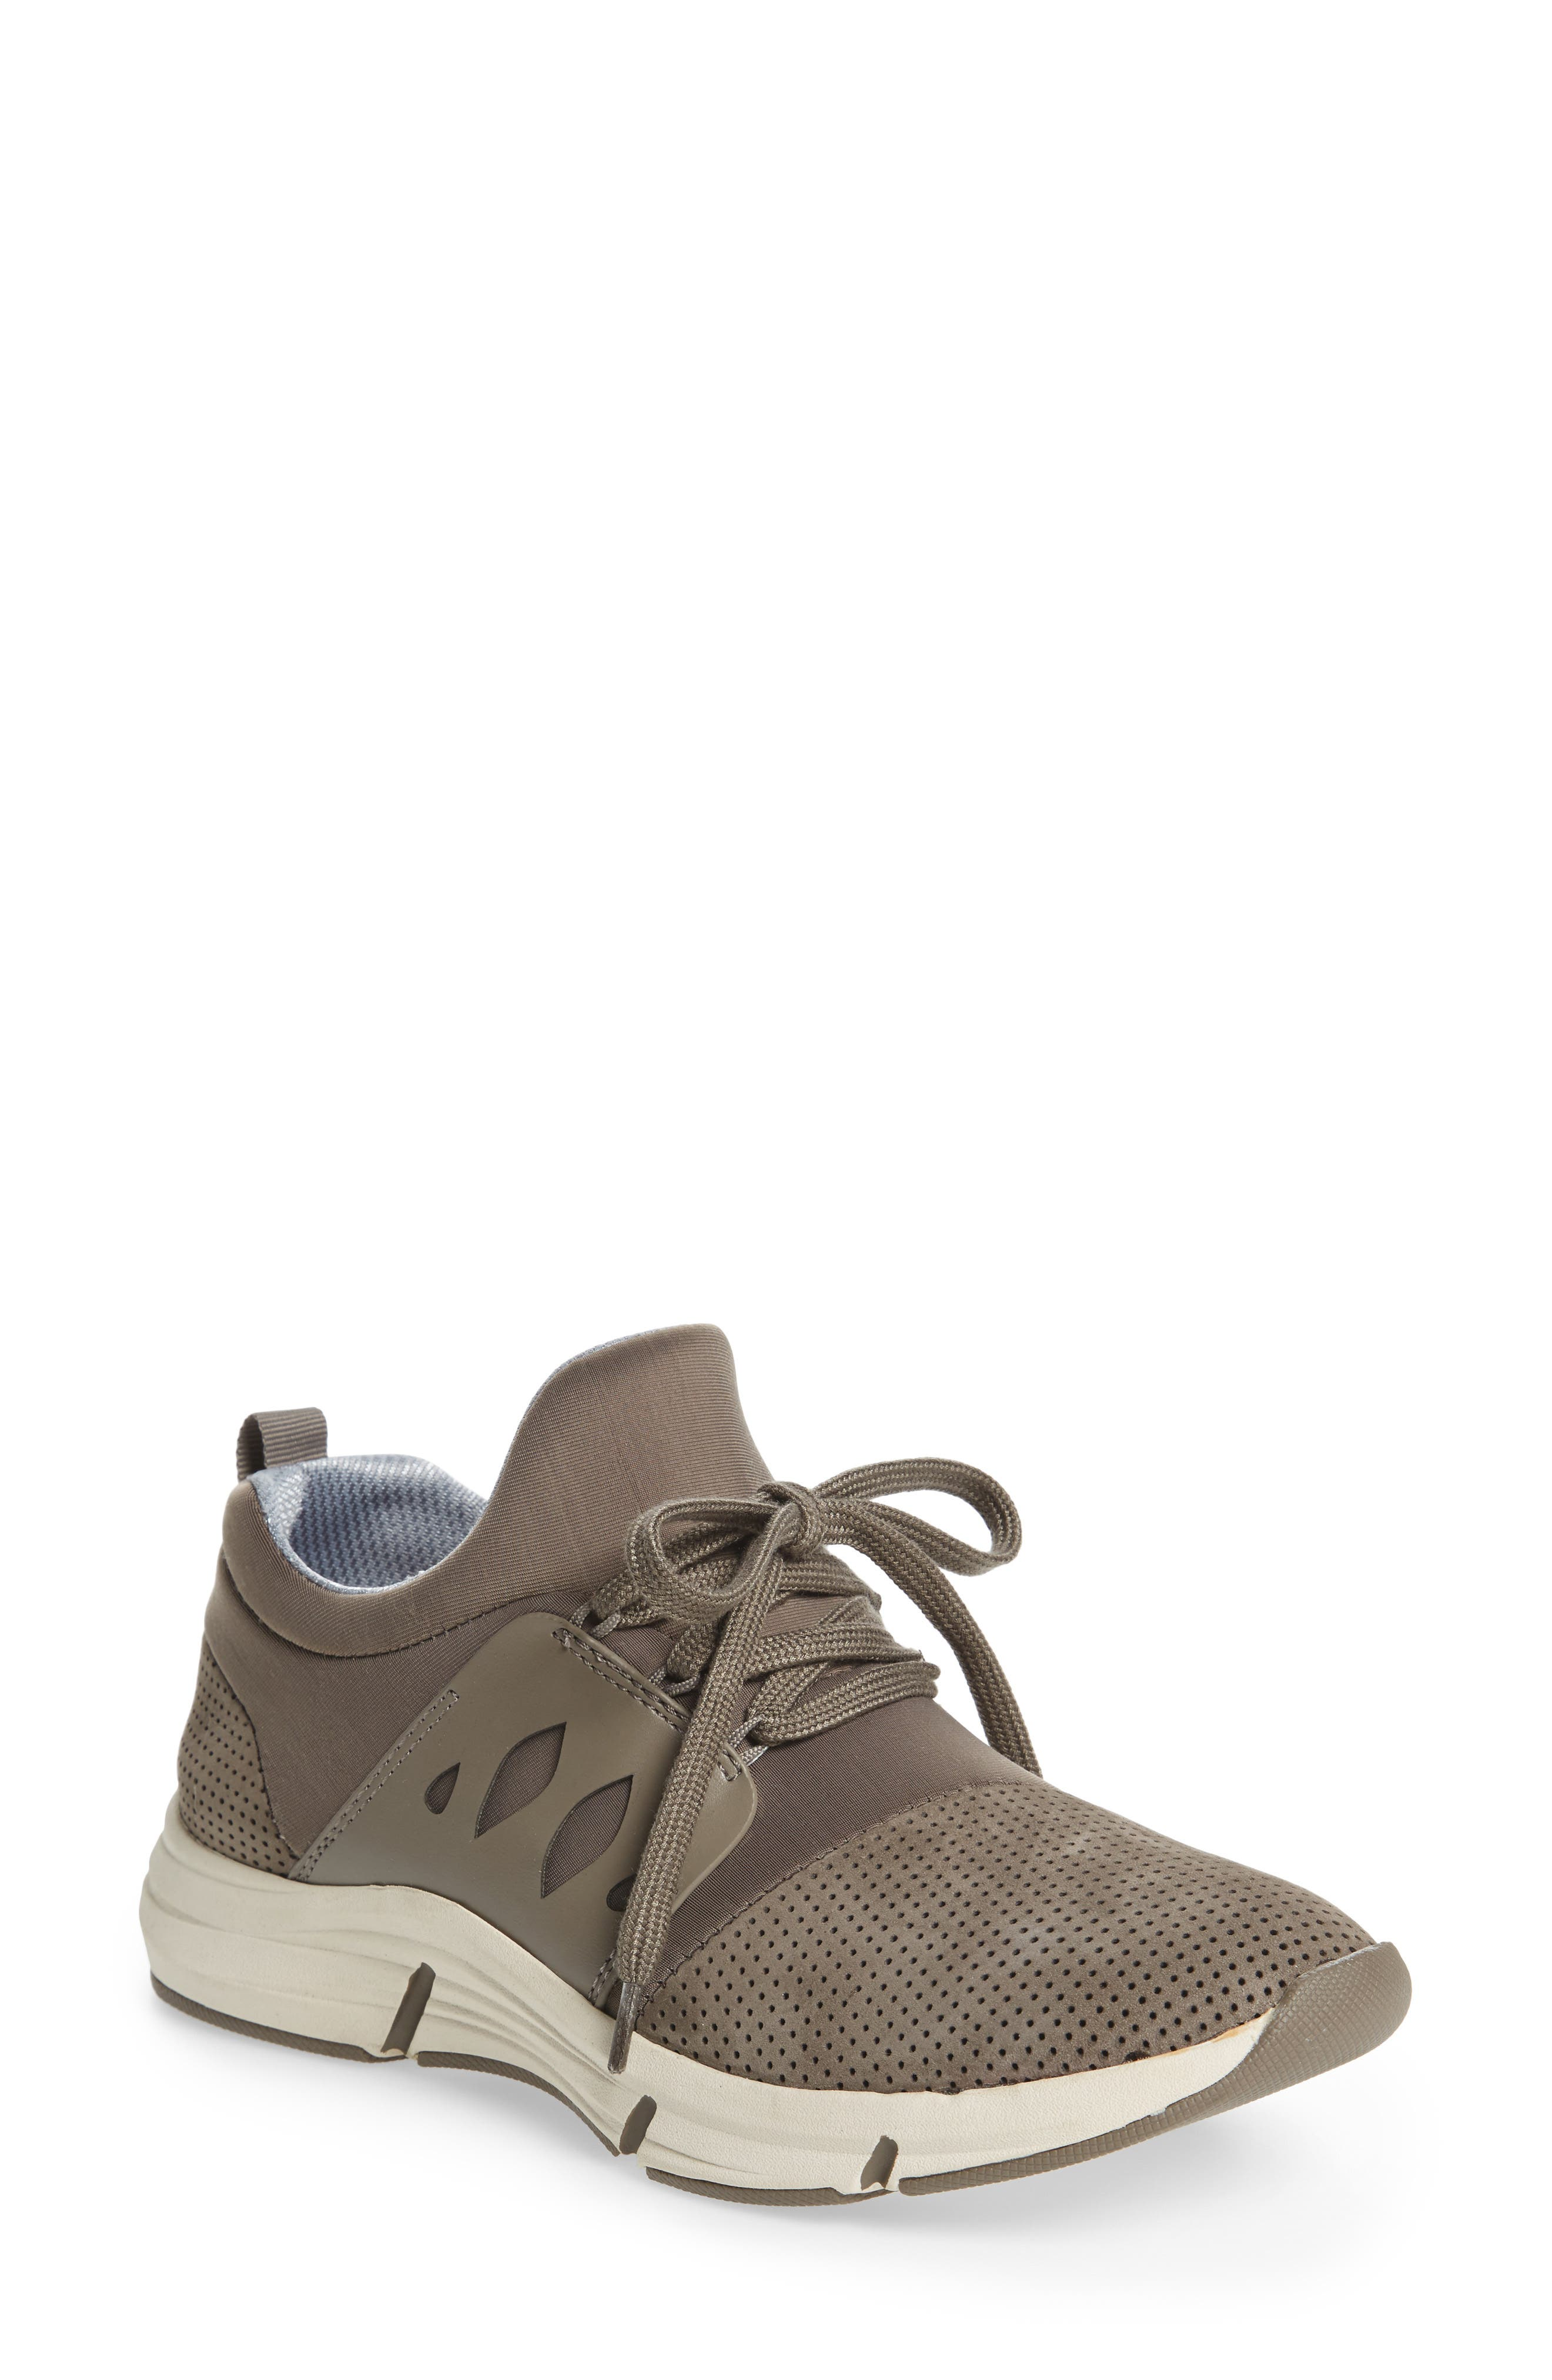 Ordell Sneaker,                             Main thumbnail 1, color,                             PAPER MACHE GREY NUBUCK